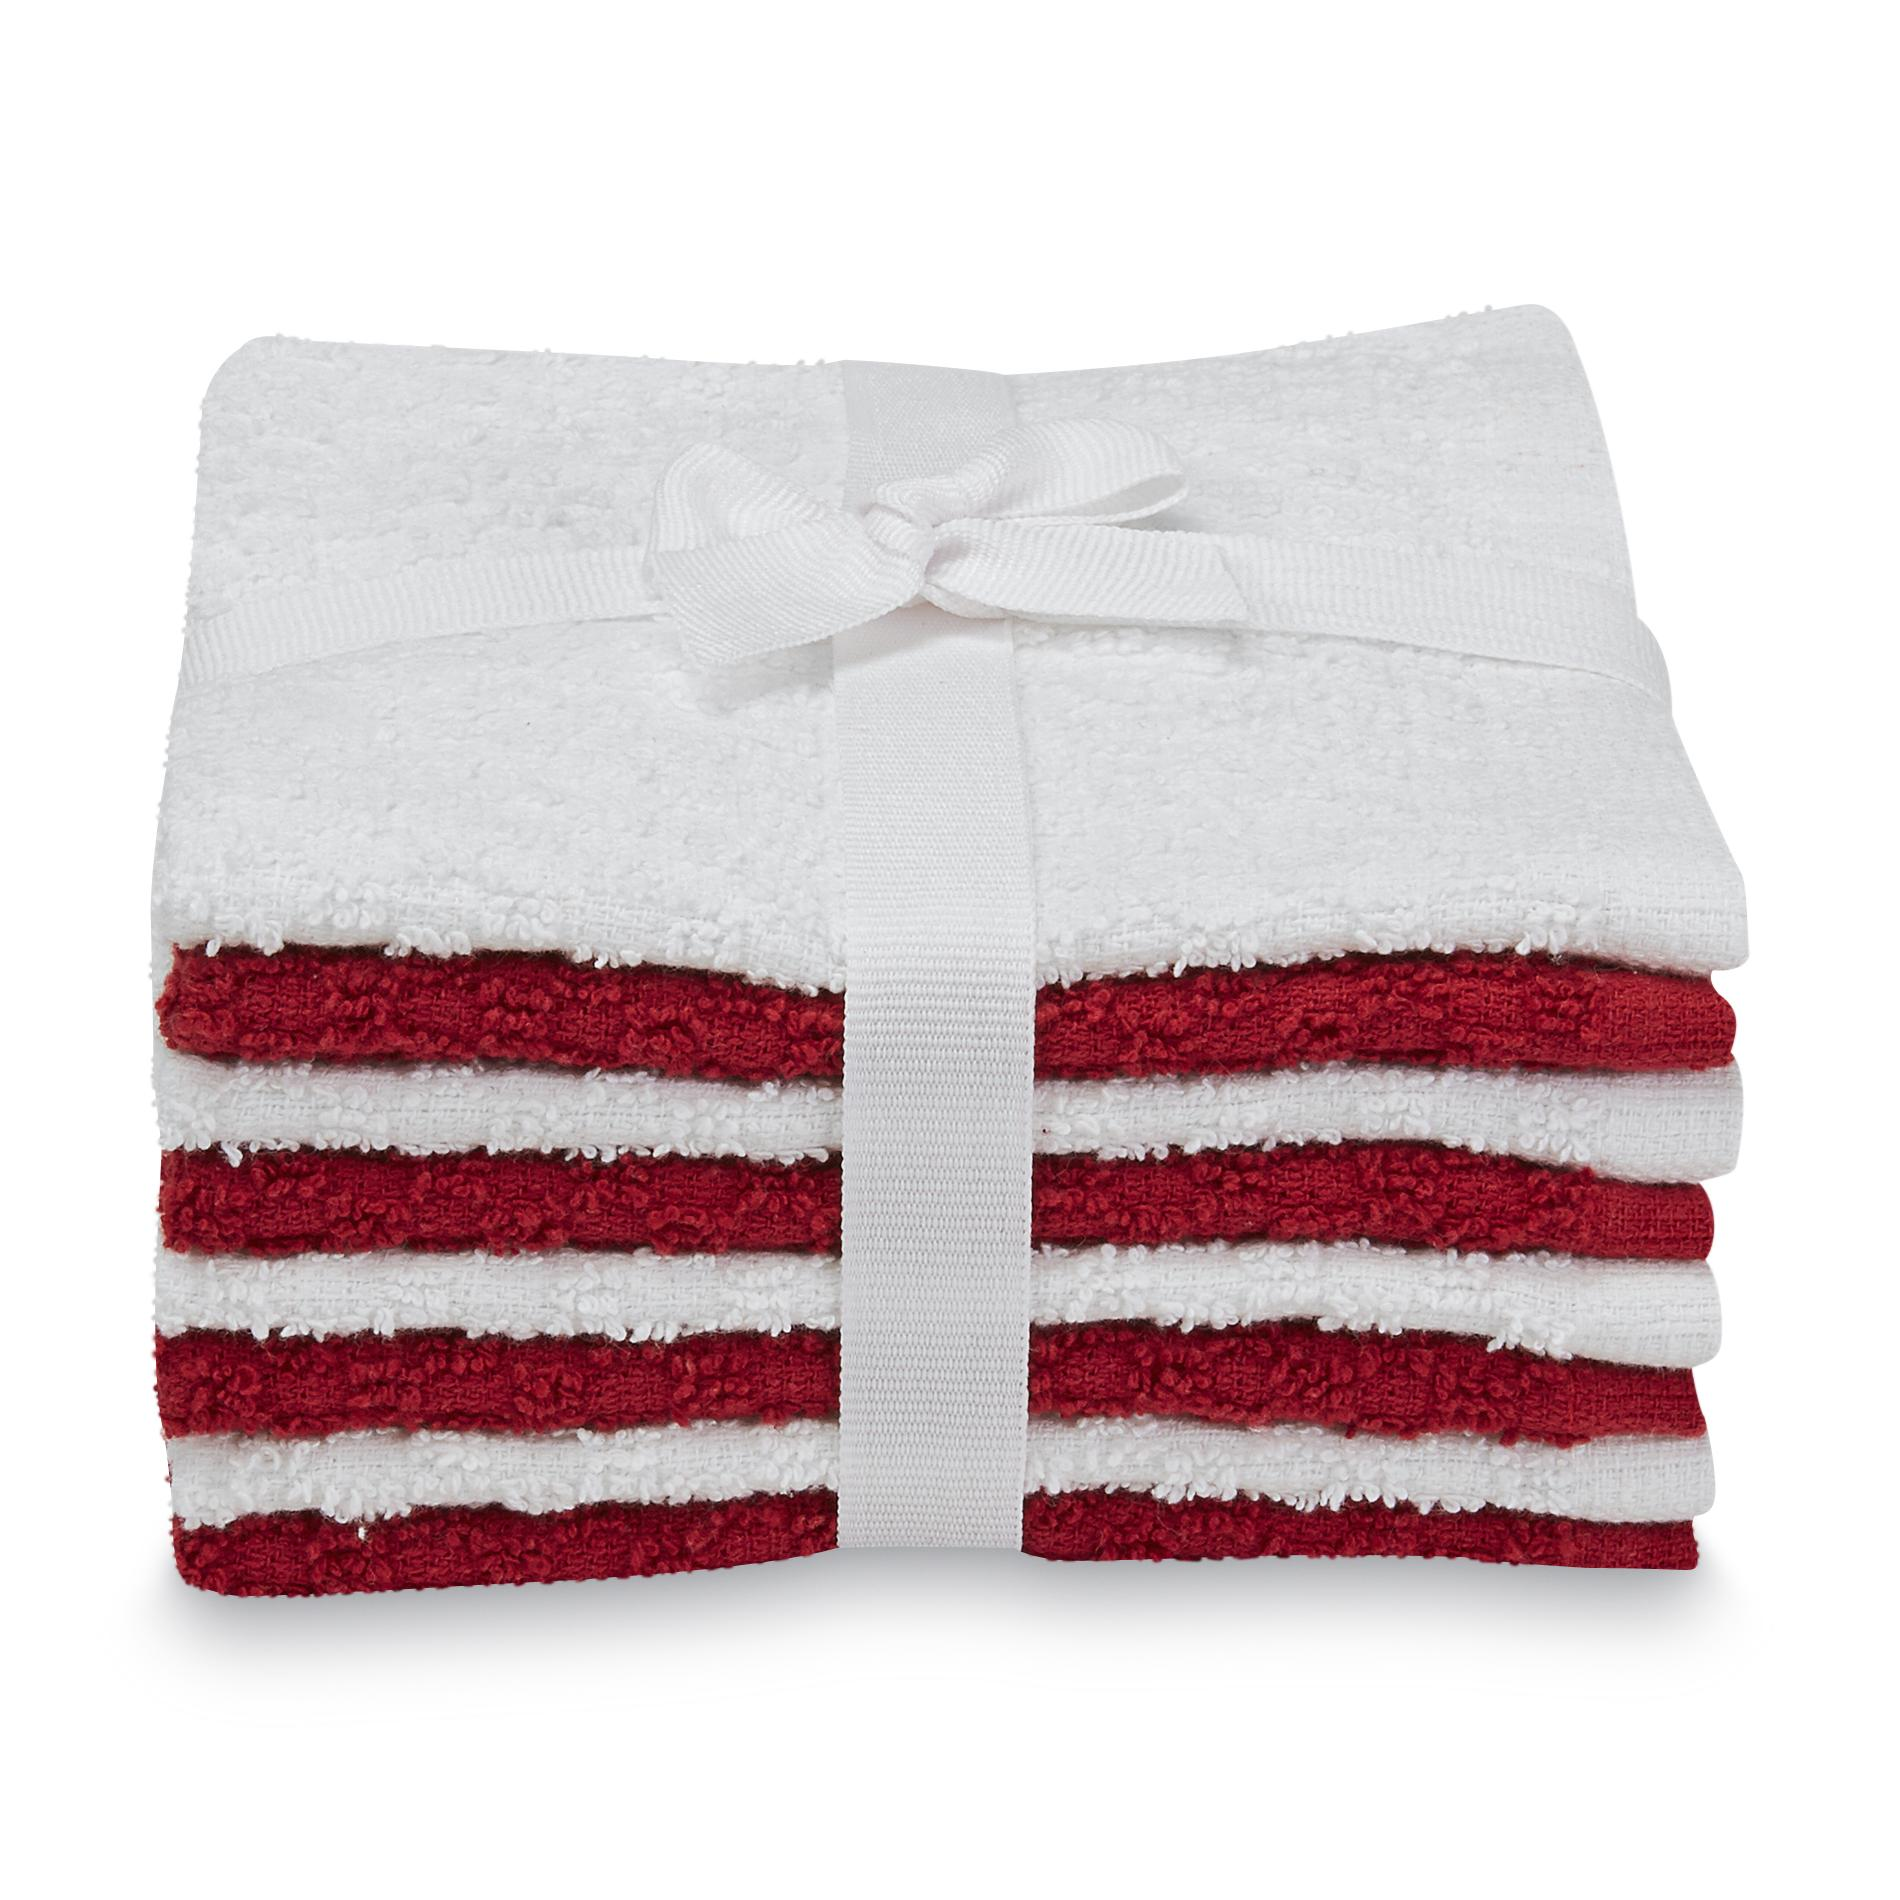 Essential Home 8-Pack Terry Washcloths